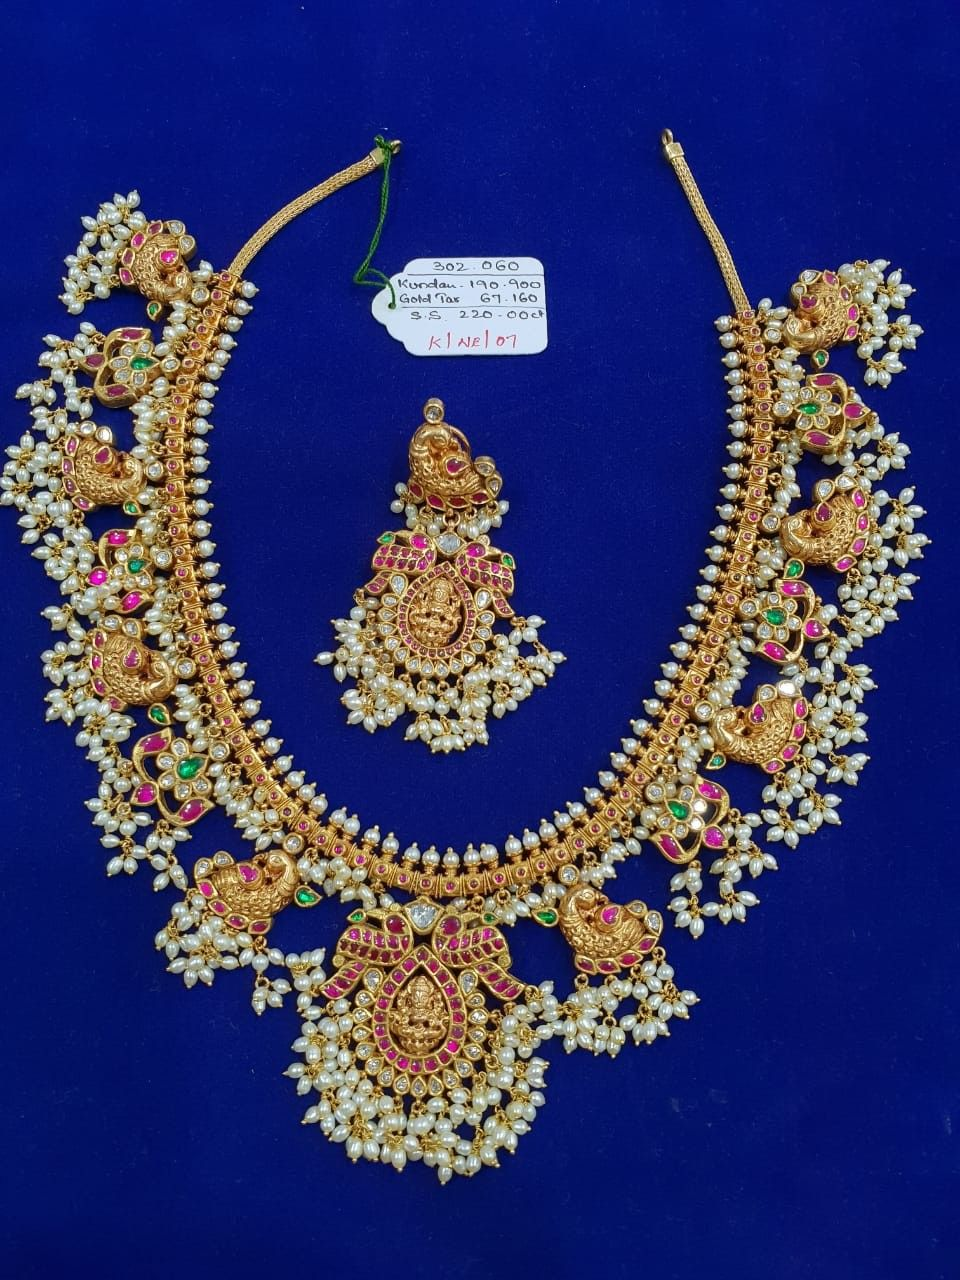 a8e8d7e2536e76 Contact 9000003918 SRI BALAJI JEWELLERS AND EXPORTS Bridal Jewellery, Gold  Jewellery, Pearl Jewelry,